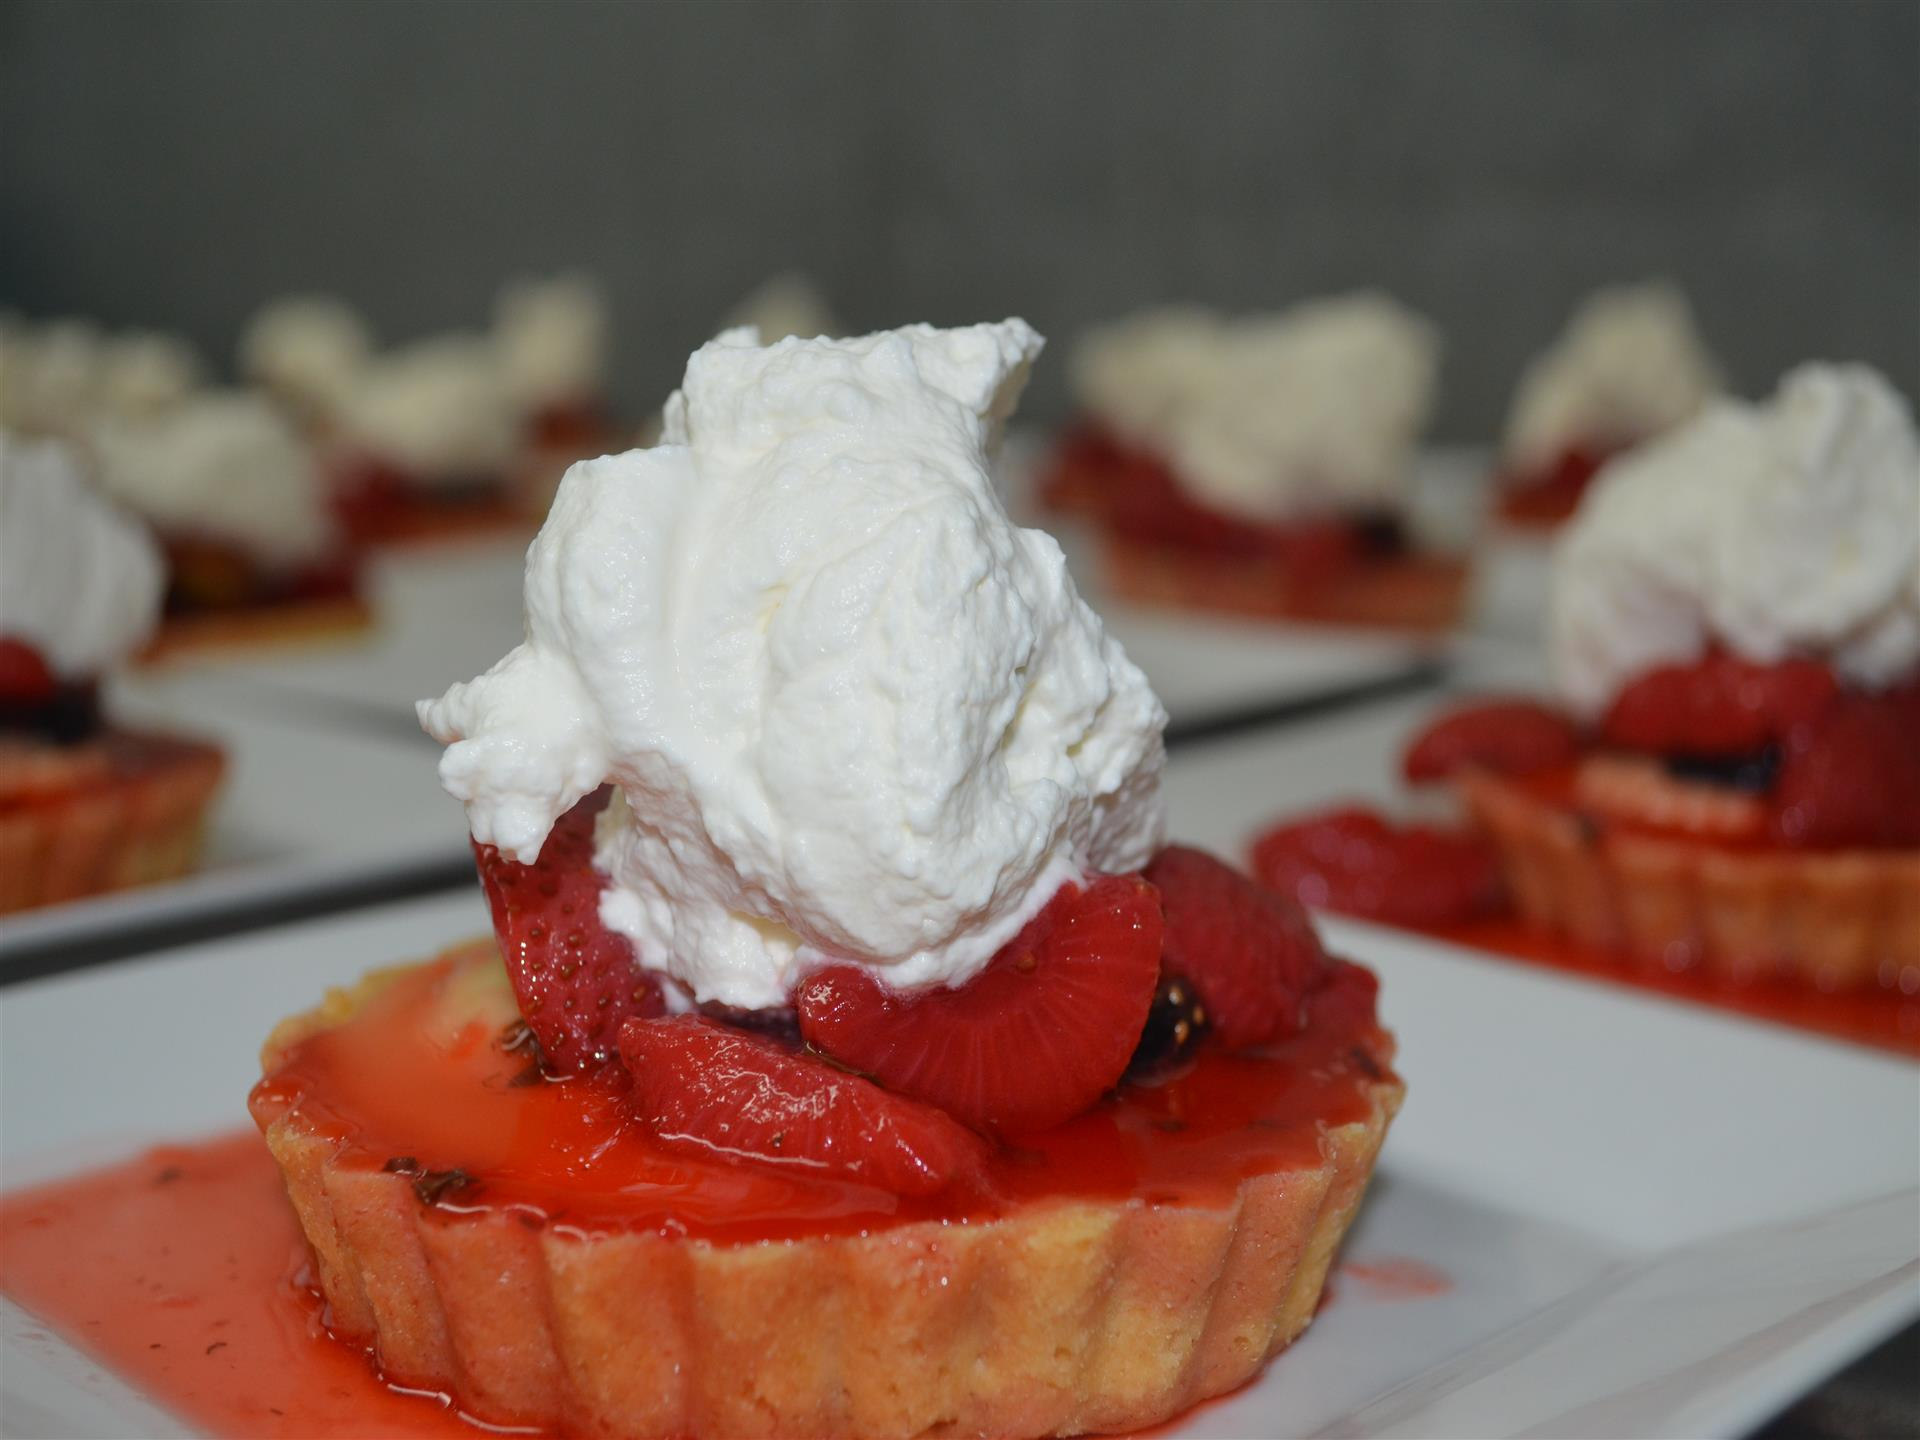 Strawberry tart topped with whipped cream